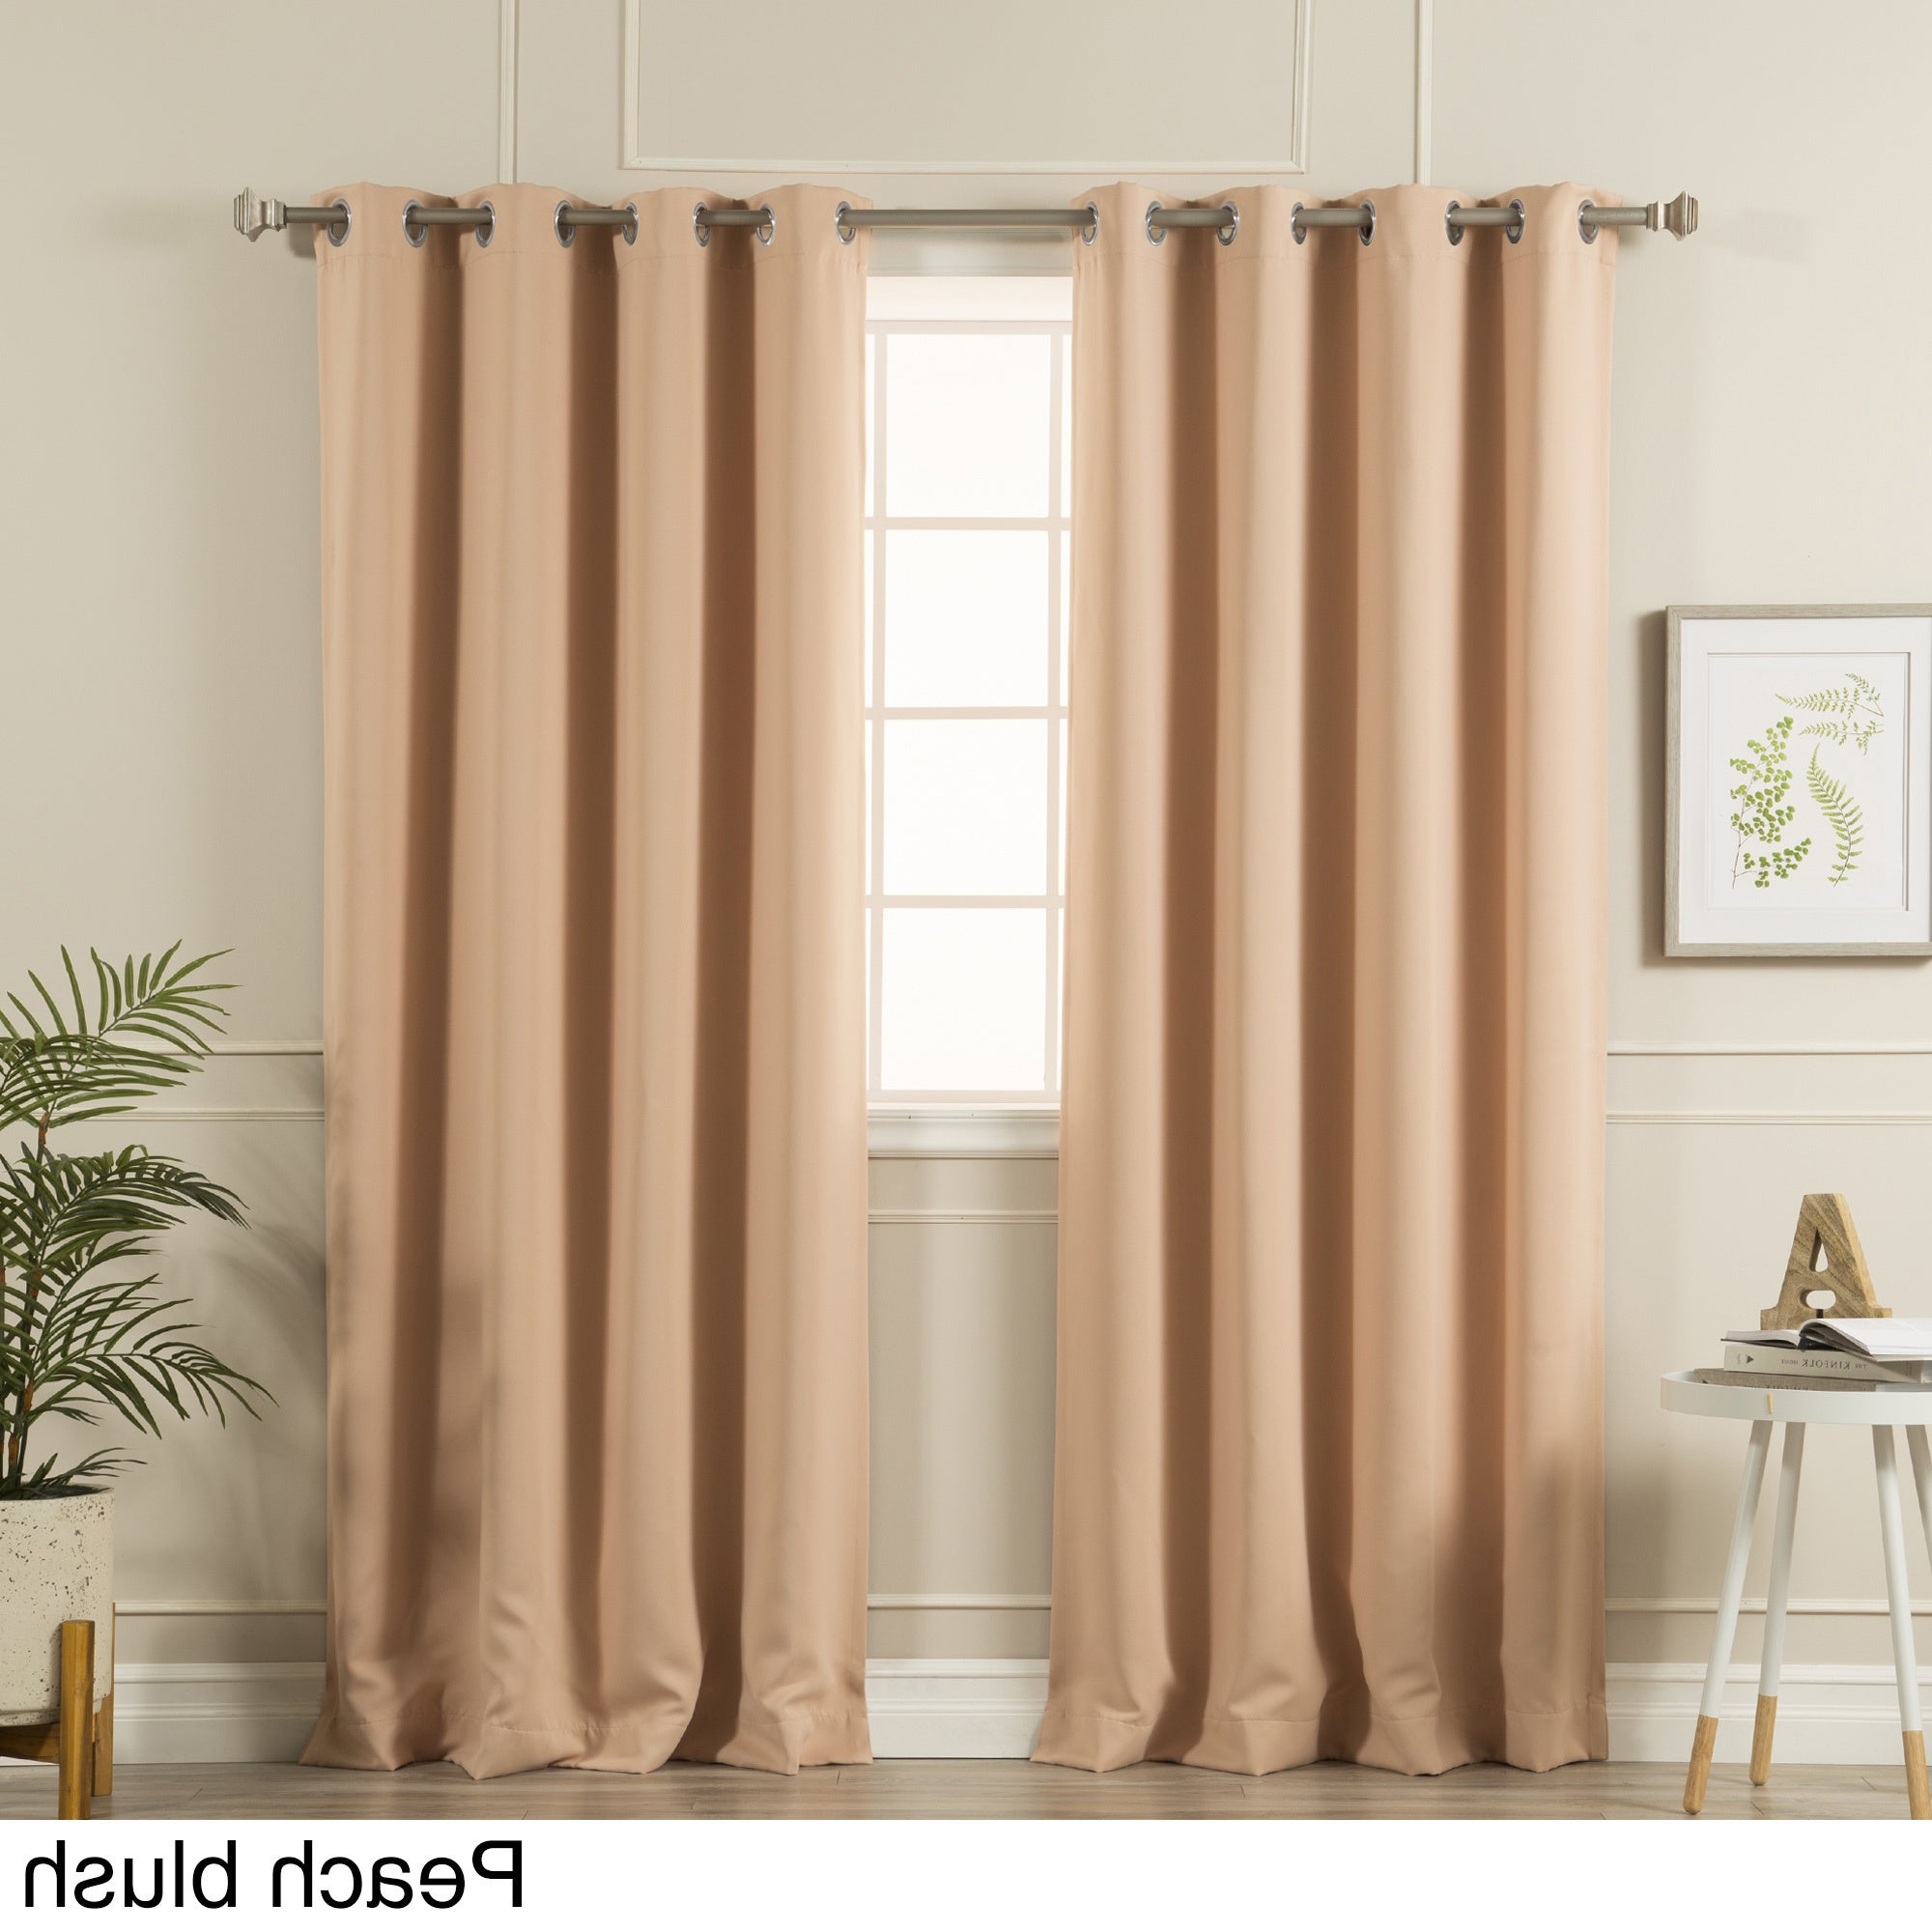 Aurora Home Silvertone Grommet Top Thermal Insulated Blackout Curtain Panel Pair In Well Liked Grommet Top Thermal Insulated Blackout Curtain Panel Pairs (View 4 of 20)